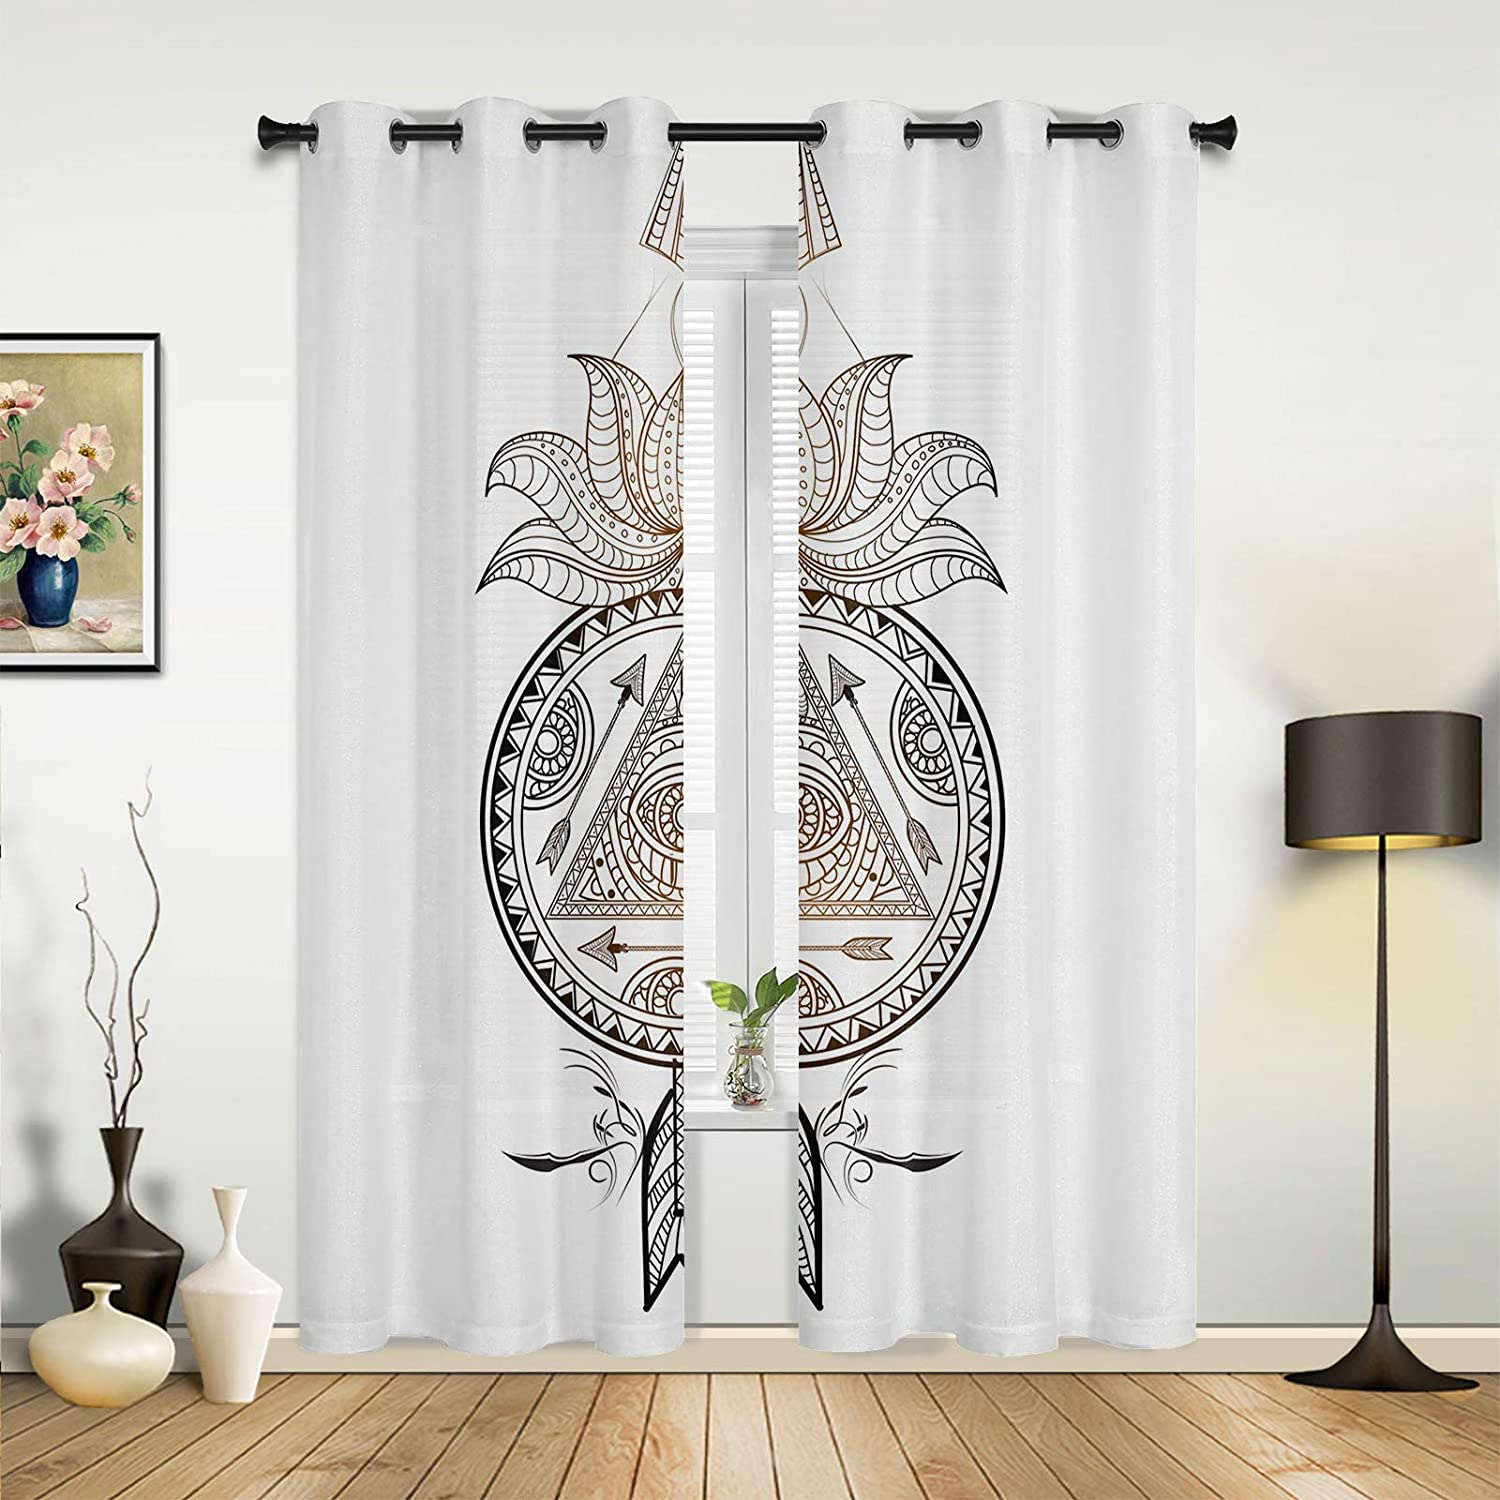 Beauty Sale SALE% OFF Decor Super sale period limited Window Sheer Curtains Living Retro Bedroom for Room